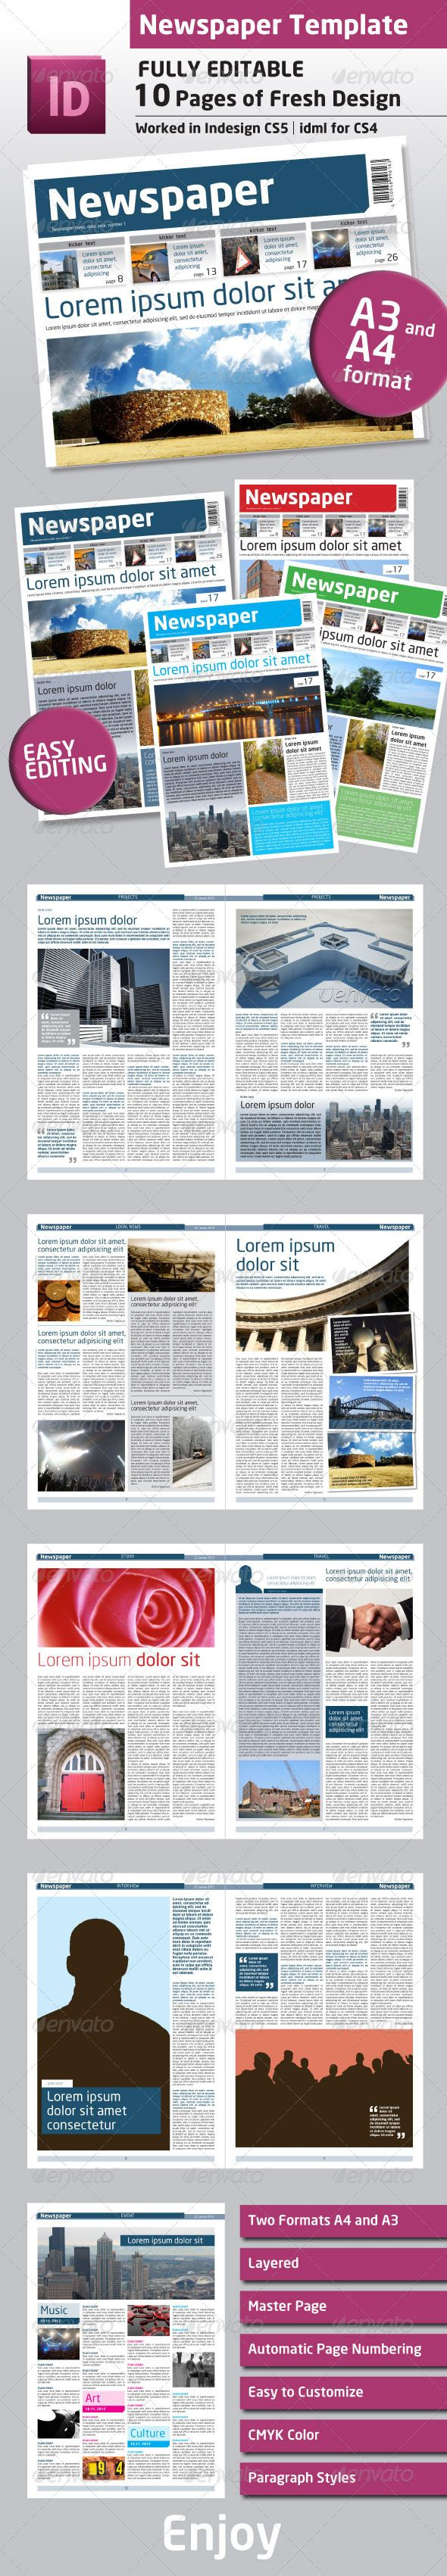 newspaper template a4 and a3 format 10 pages newsletter template